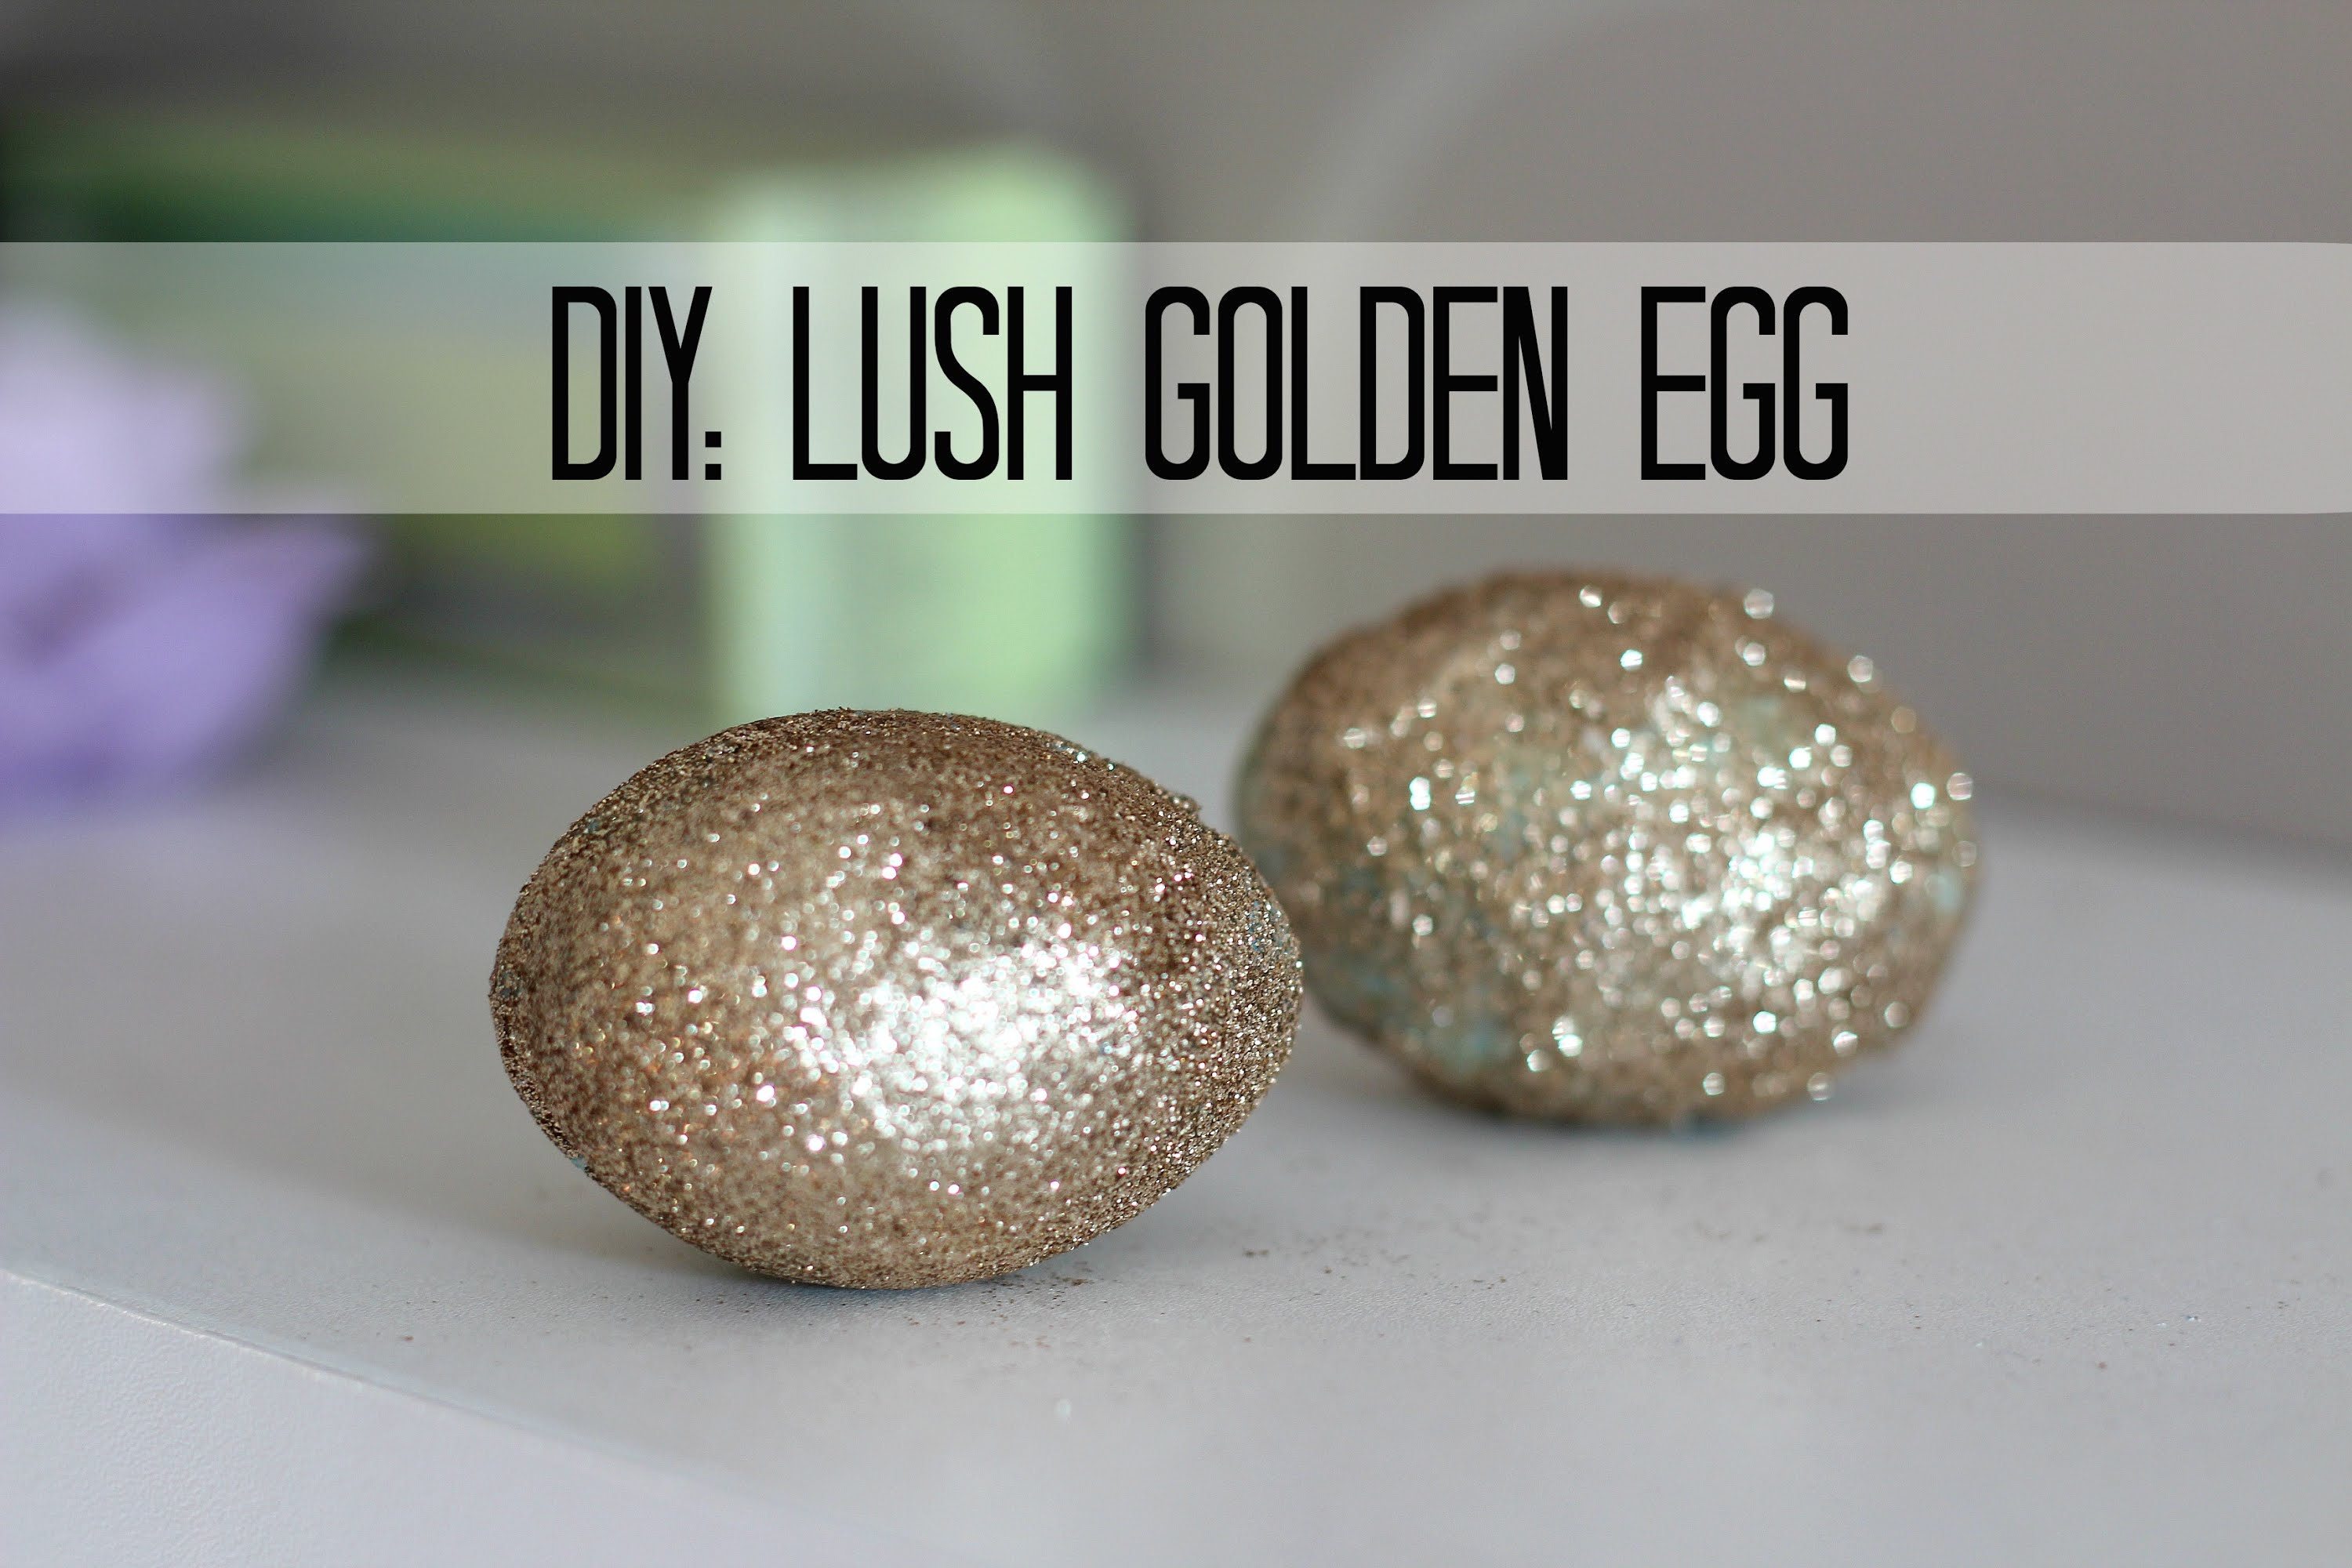 Diy lush golden egg bath bomb